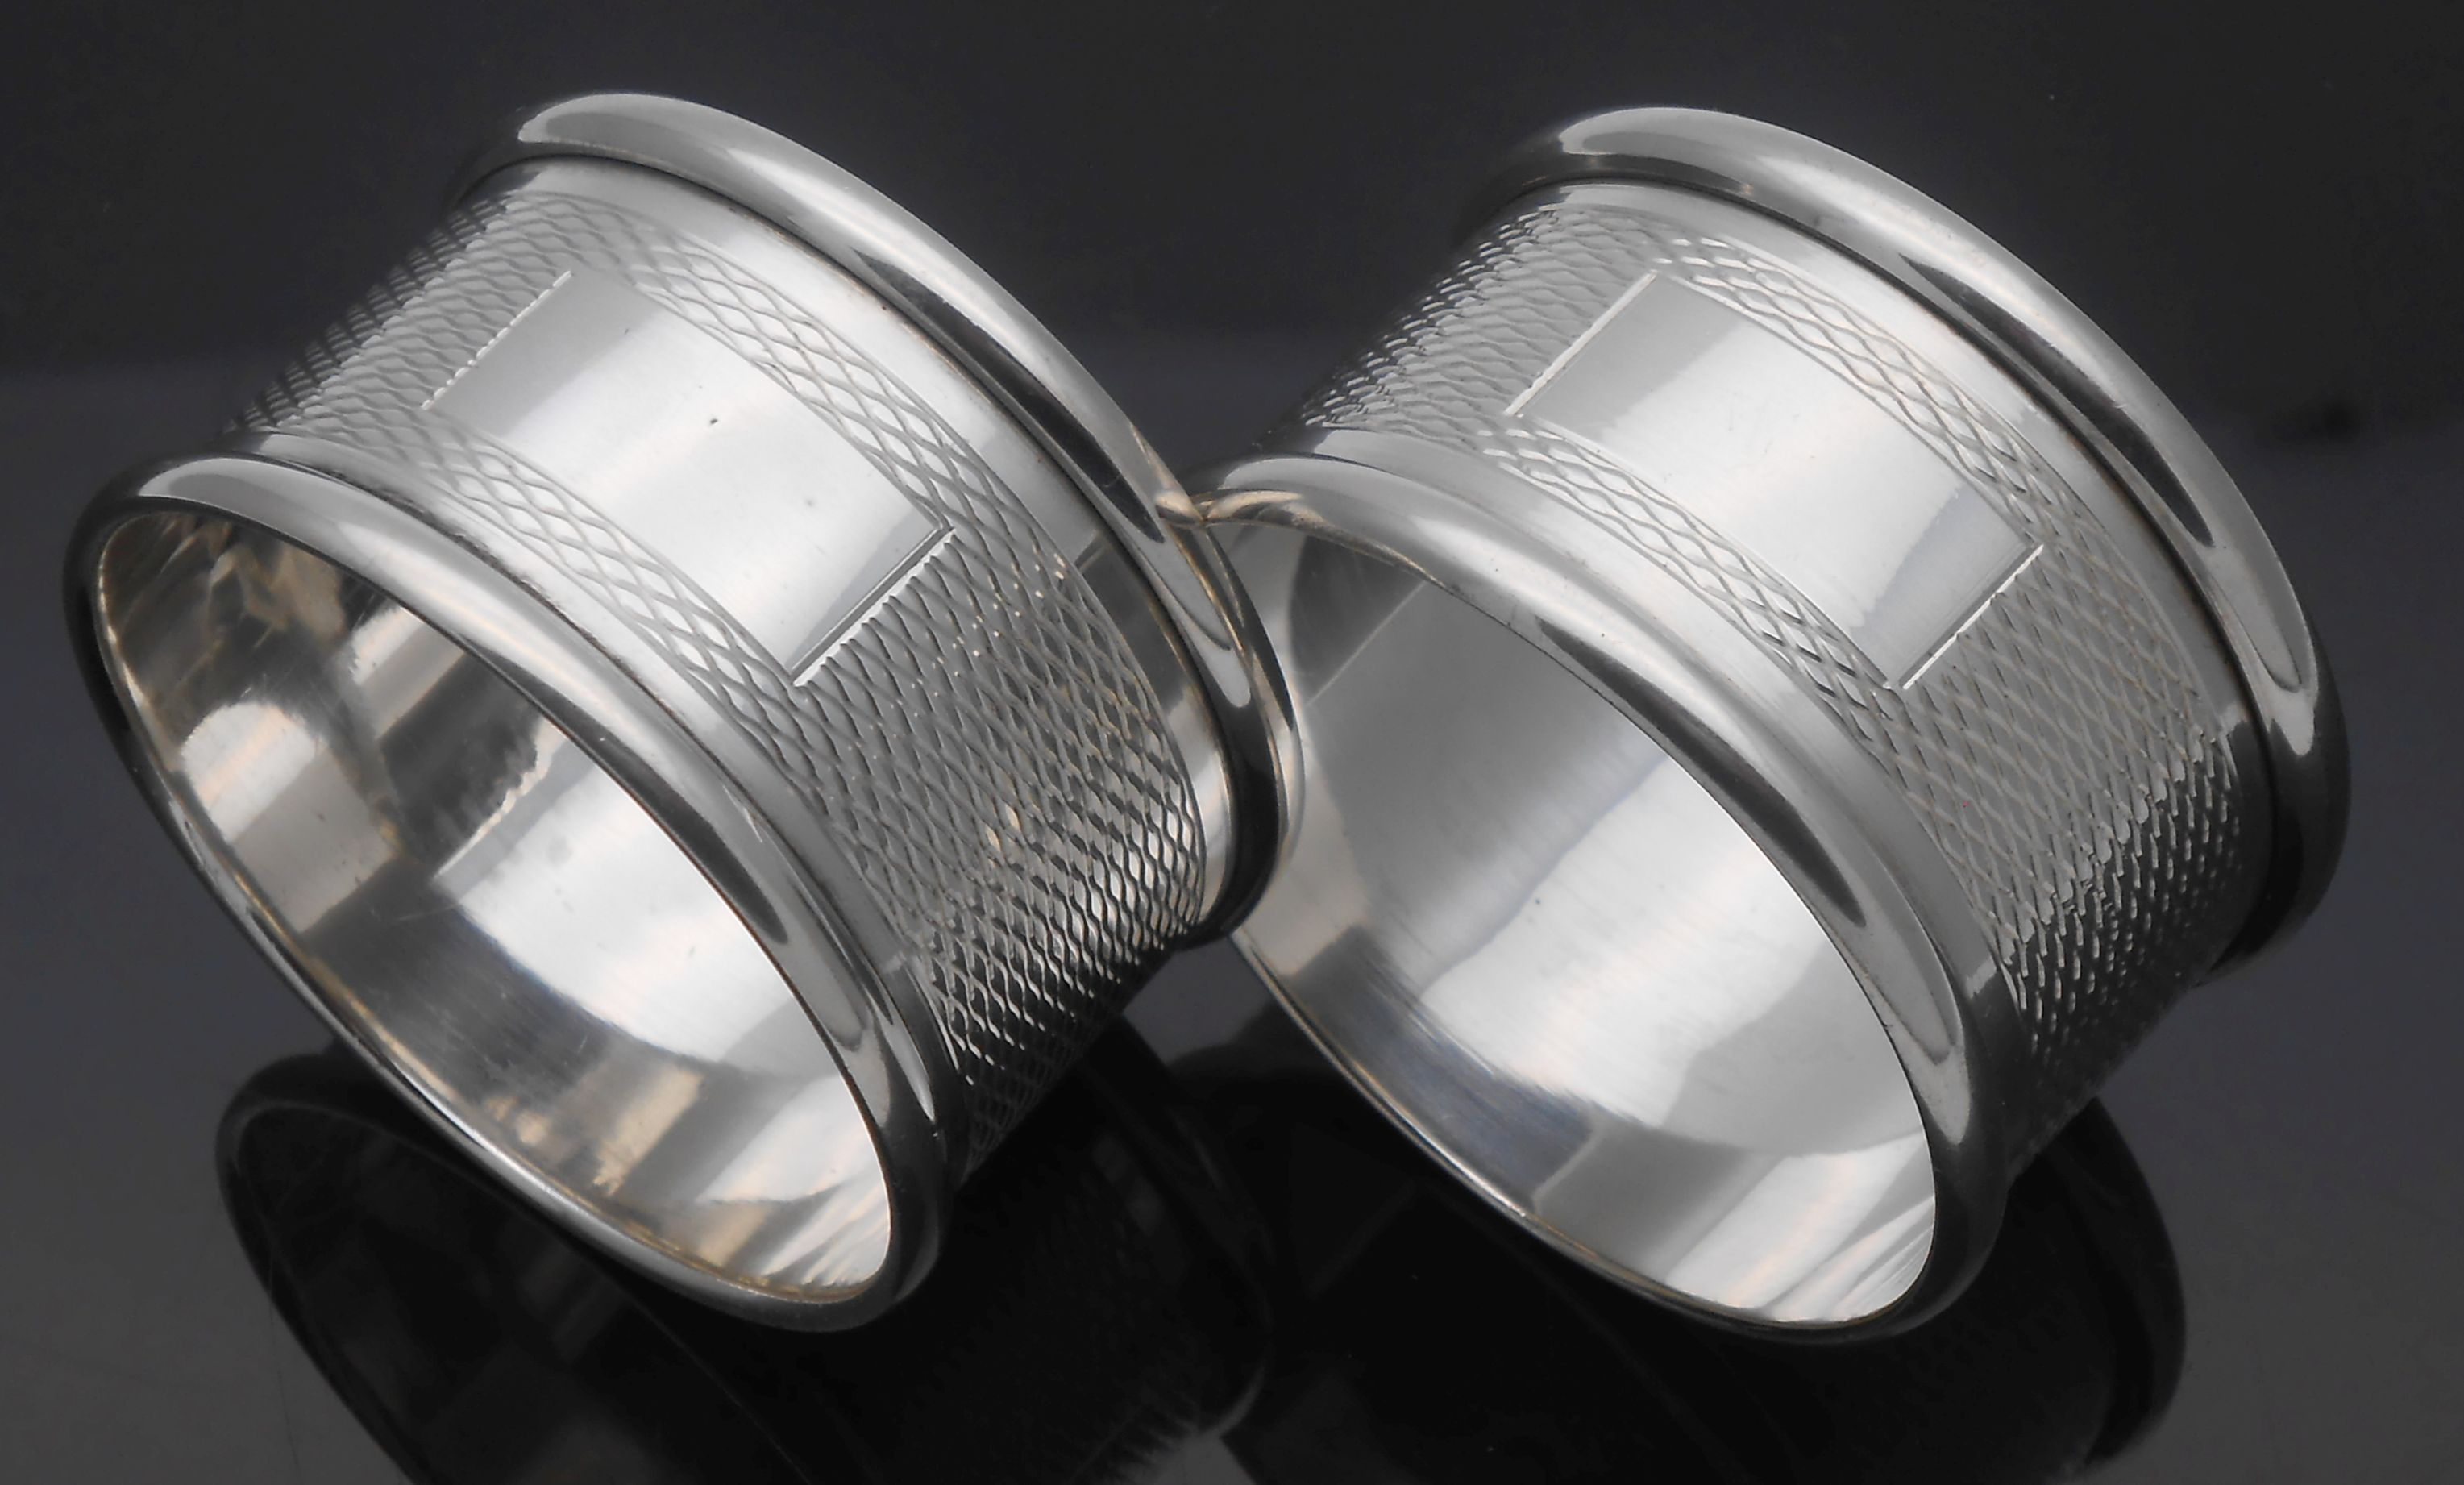 Pair Sterling Silver Napkin Rings John Rose Birmingham 1967 No Initials Vintage Kitsch Antique Silver Cutlery Collectables